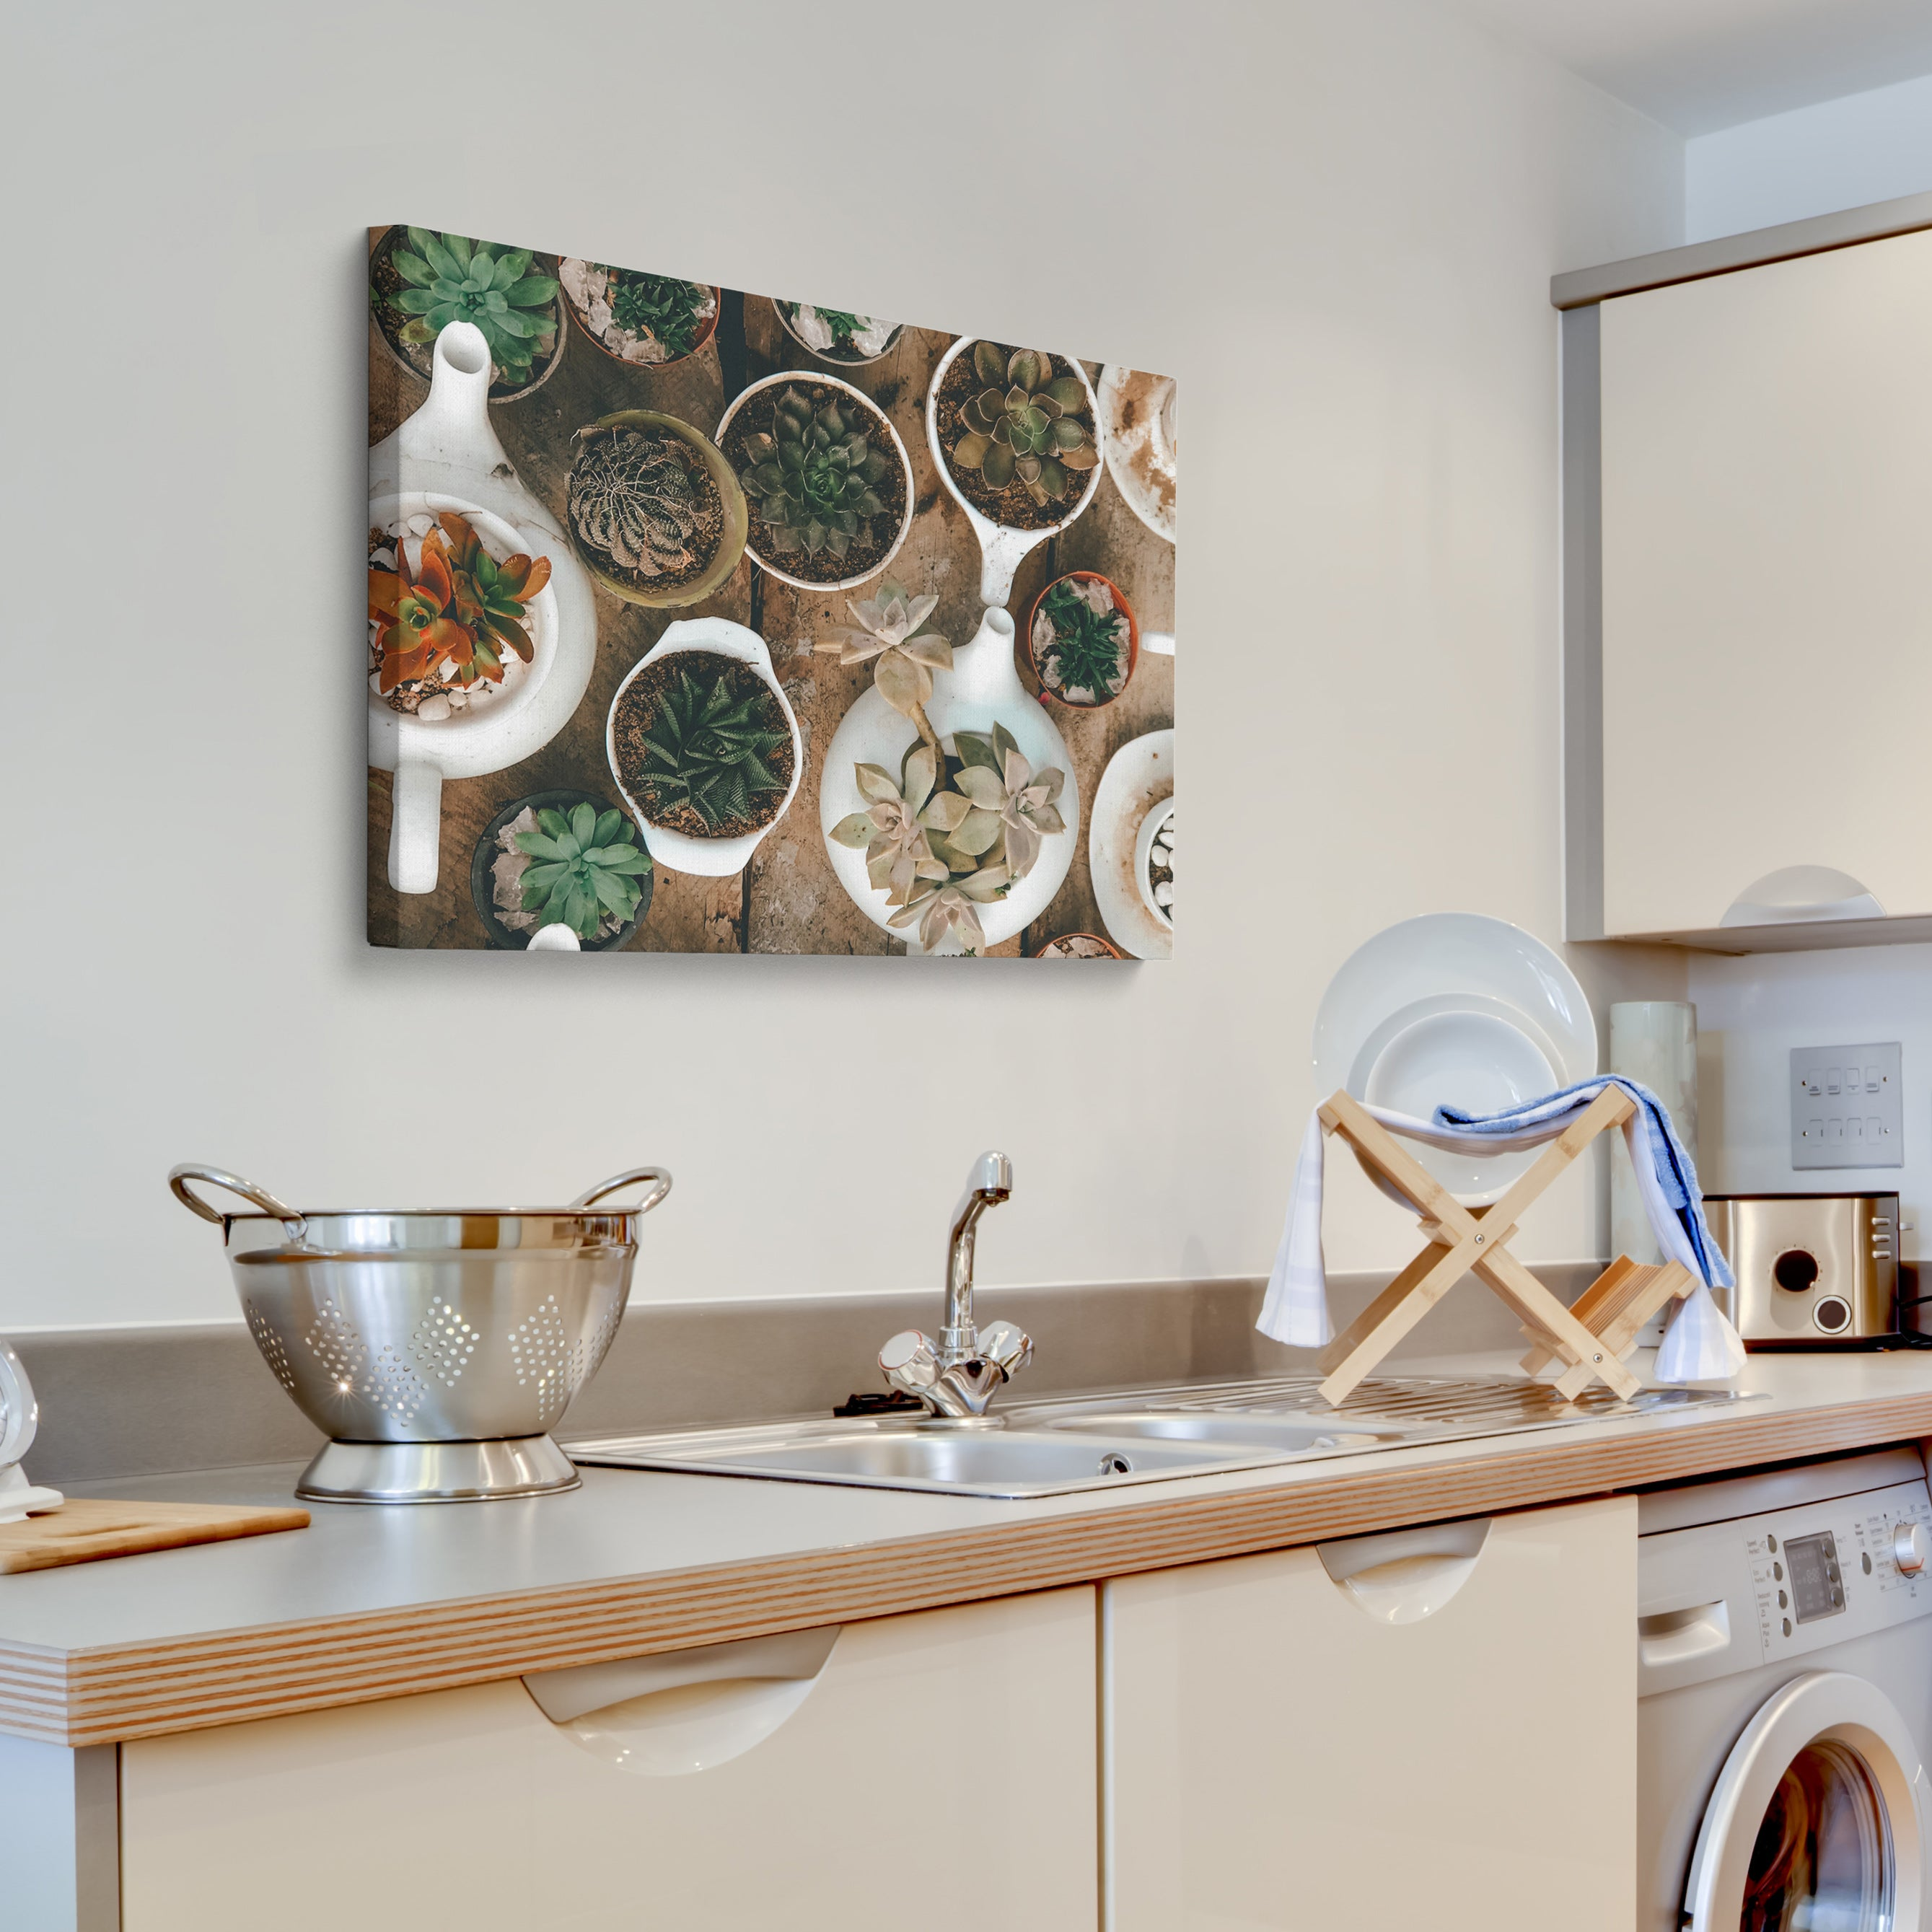 Canvas Print of Food Photo Displayed in Kitchen